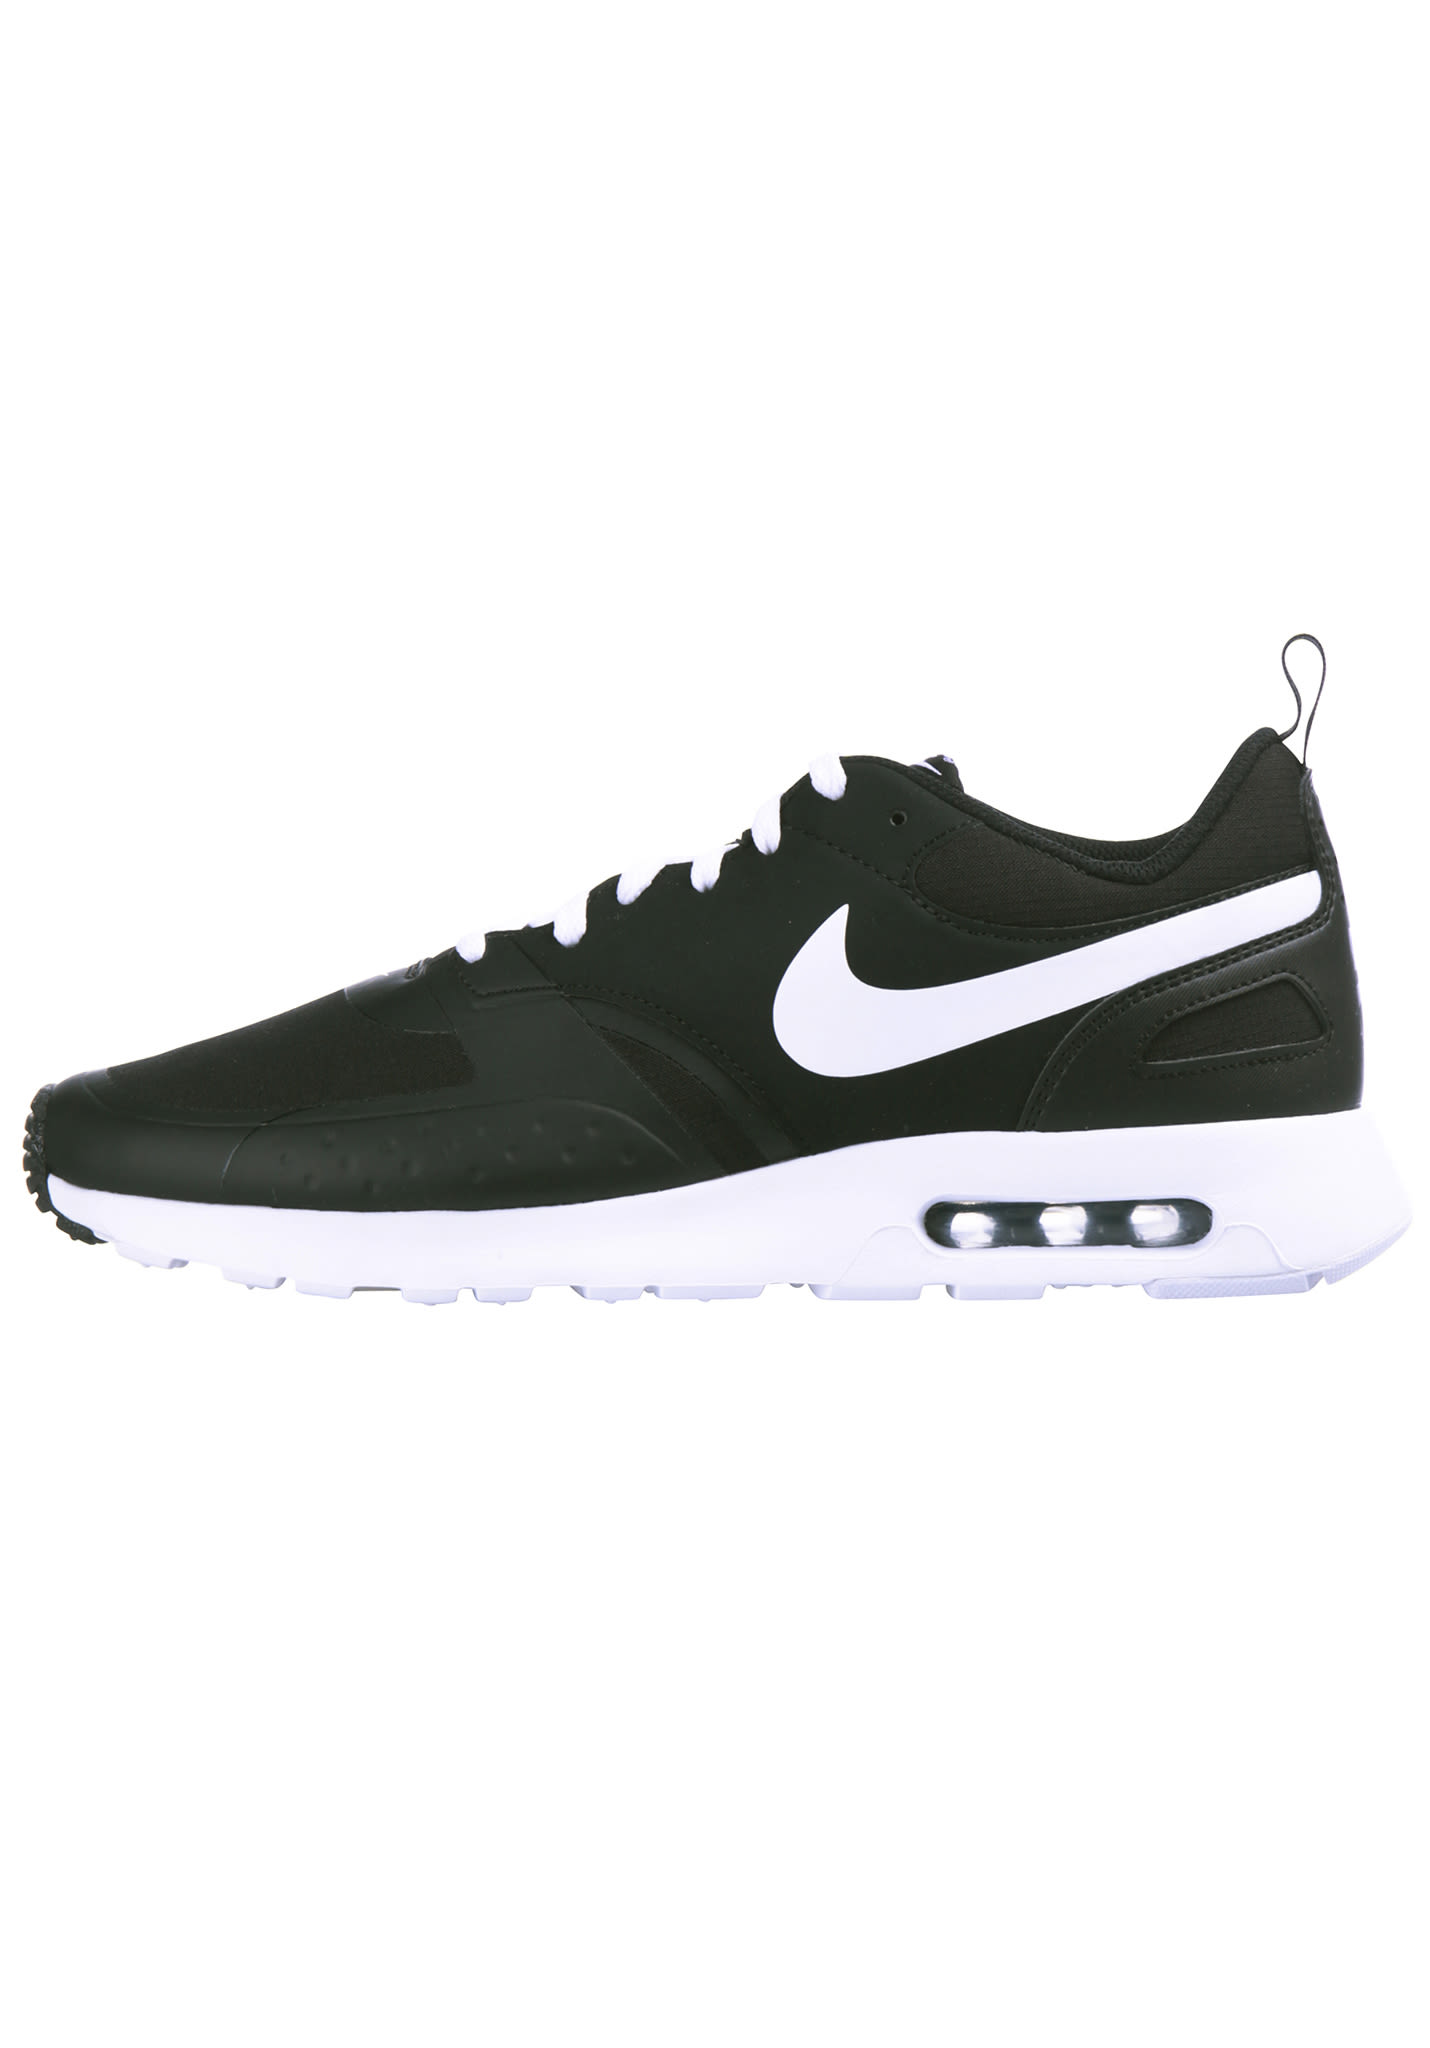 more photos 23220 f6df1 NIKE Air Max   PLANET SPORTS tienda online